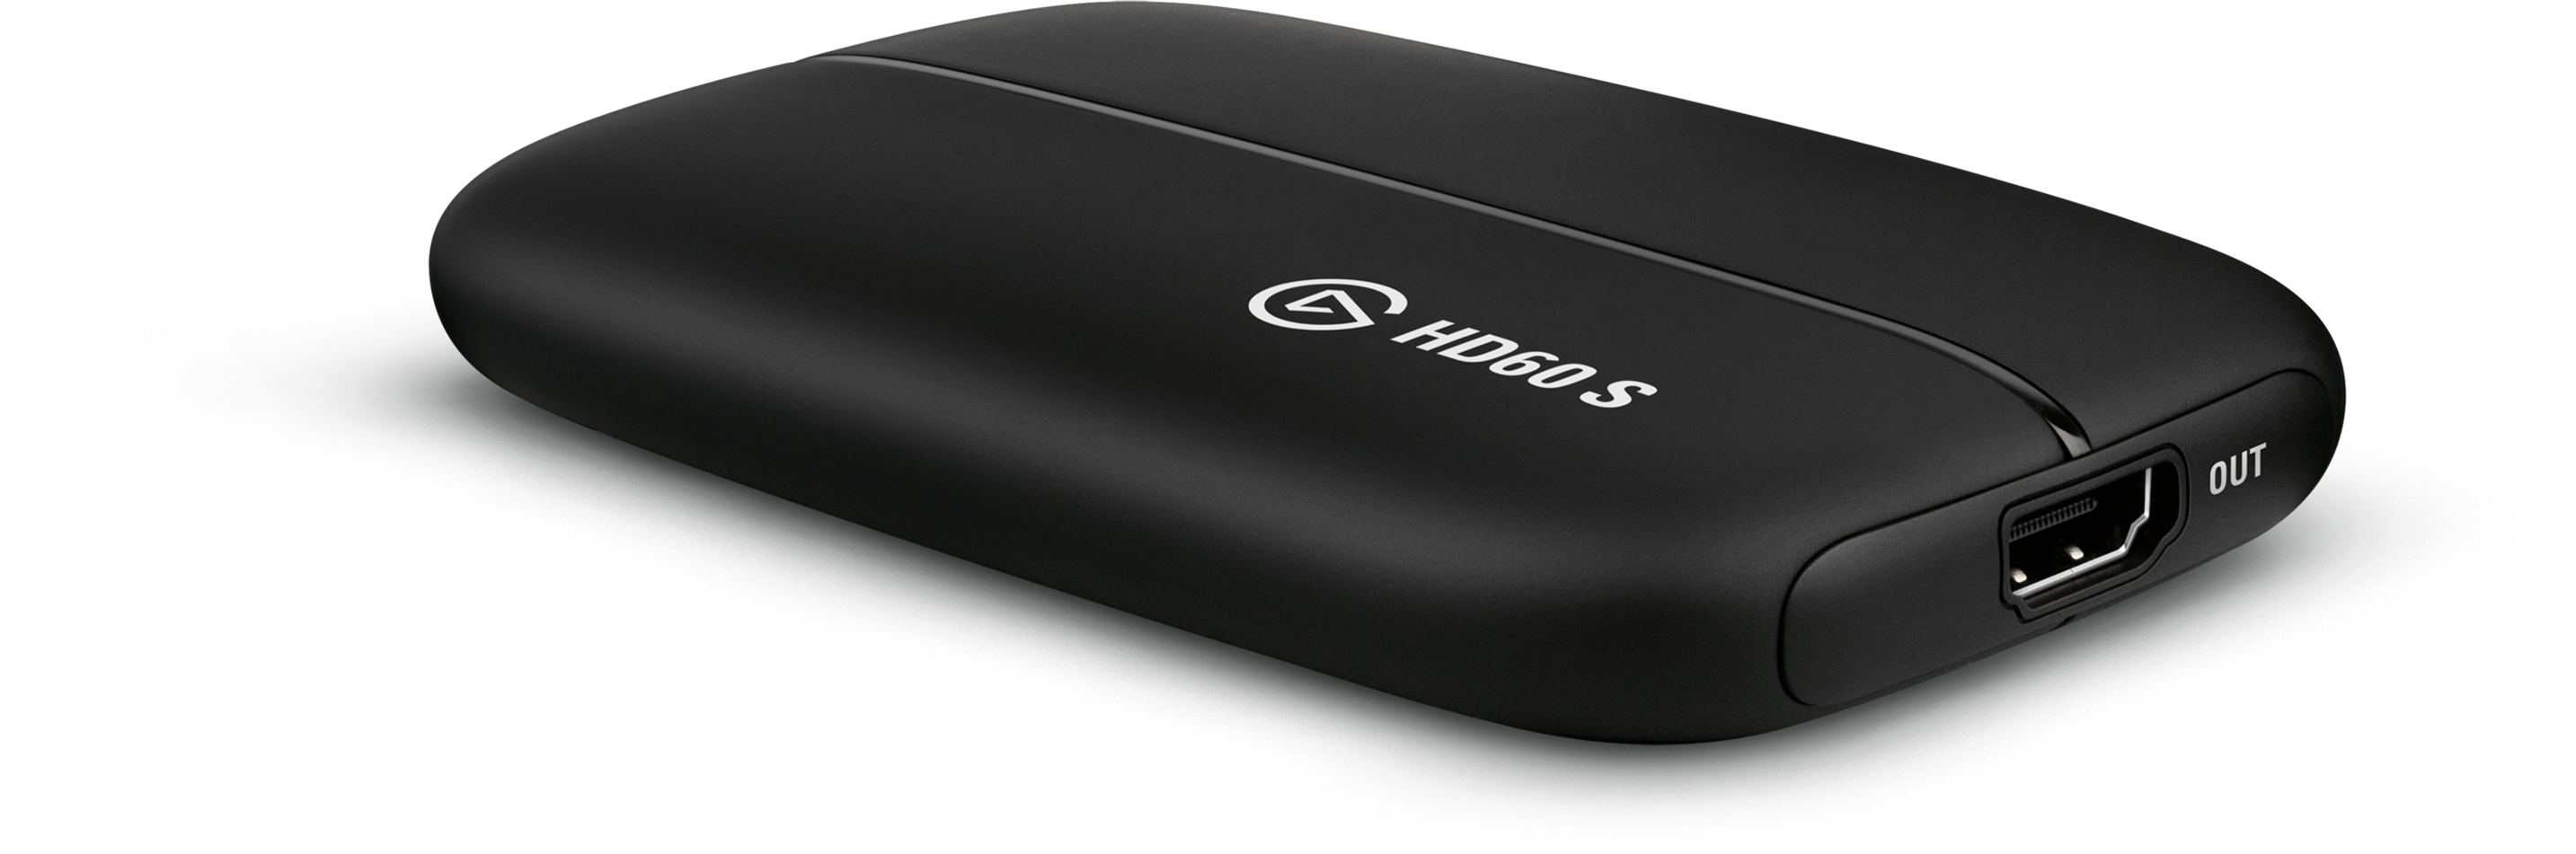 Right birdseye view of the Elgato Systems Game Capture HD60 S